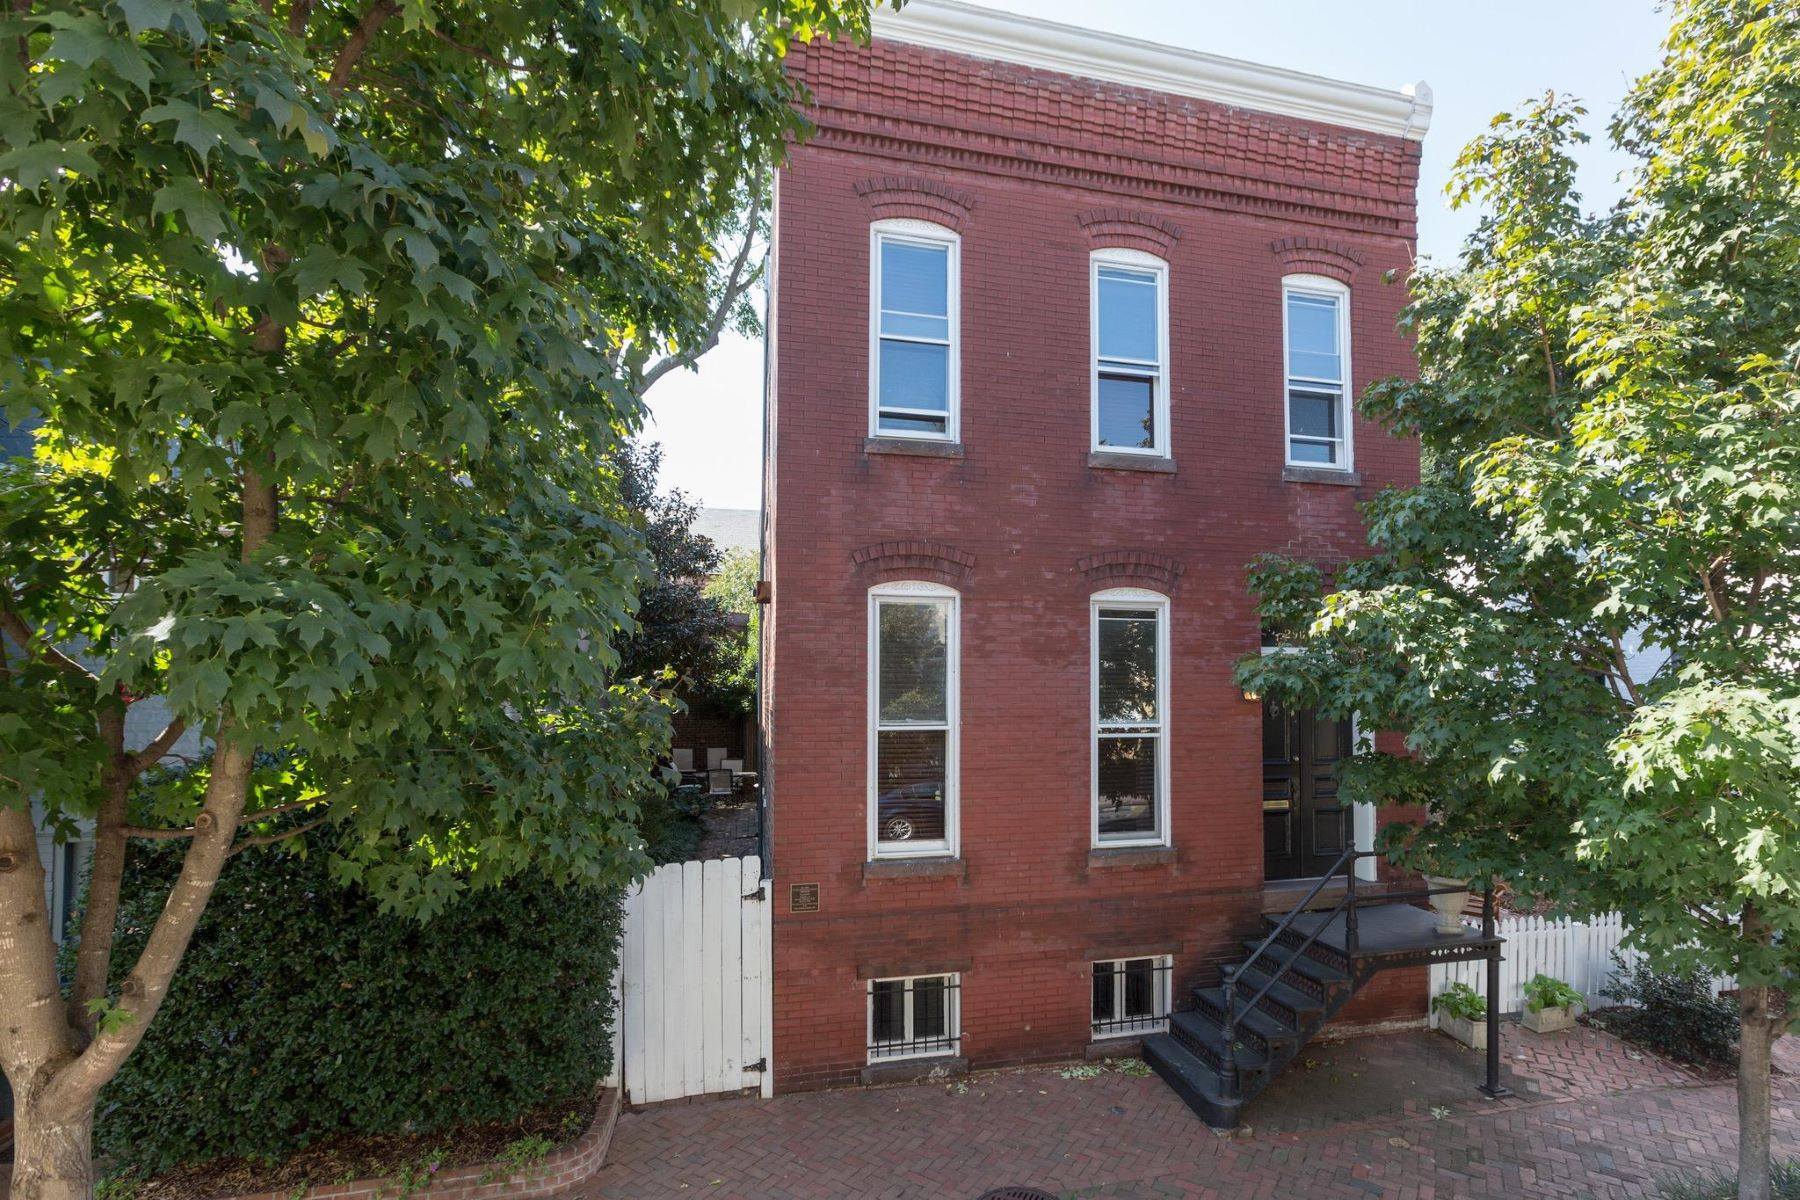 Single Family Home for Rent at 2902 O ST NW 2902 O ST NW Washington, District Of Columbia 20007 United States